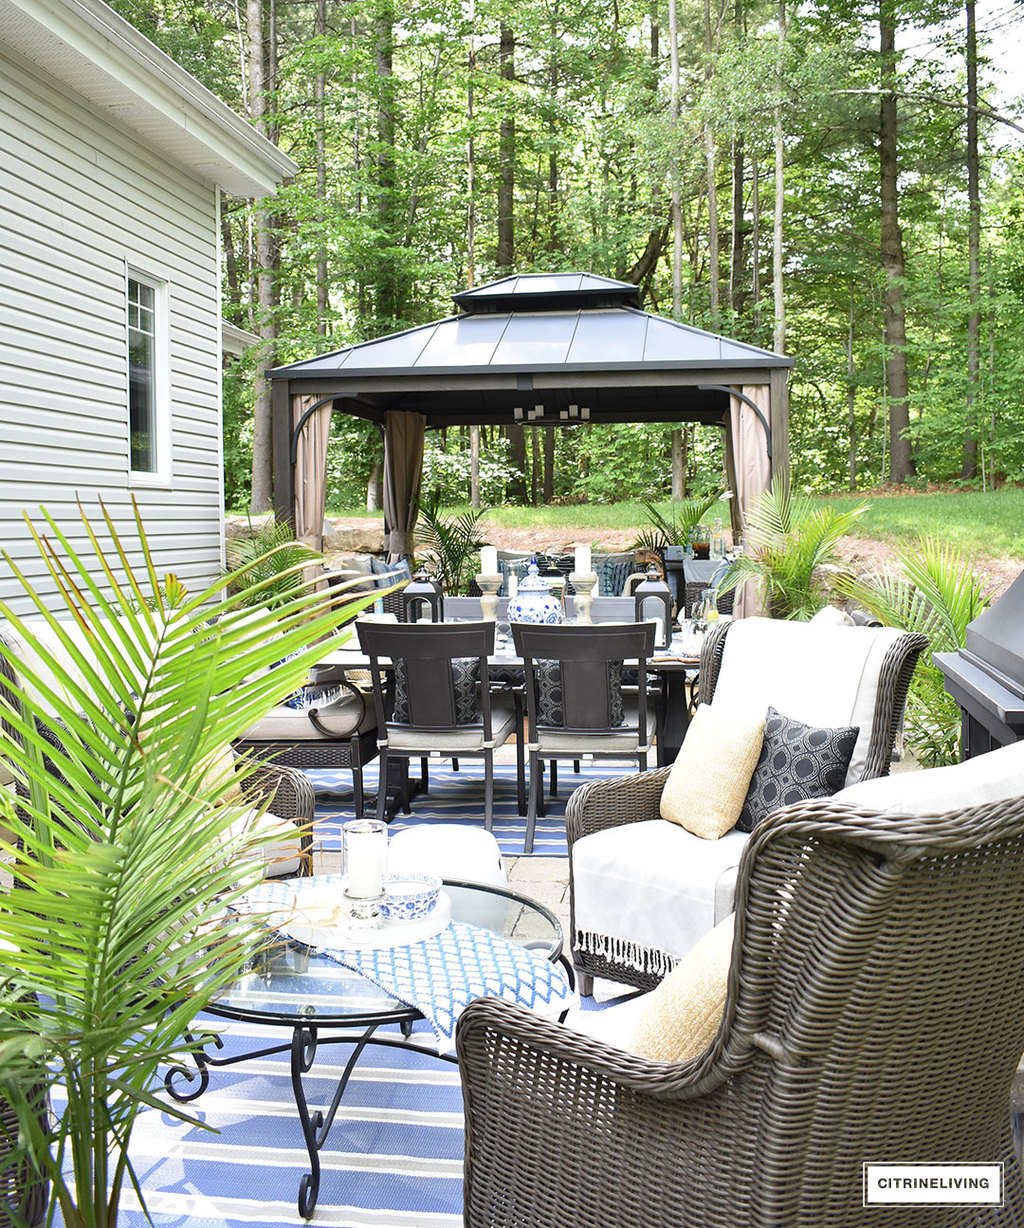 10 Ways To Create A Backyard Oasis: OUR NEW BACKYARD PATIO REVEAL